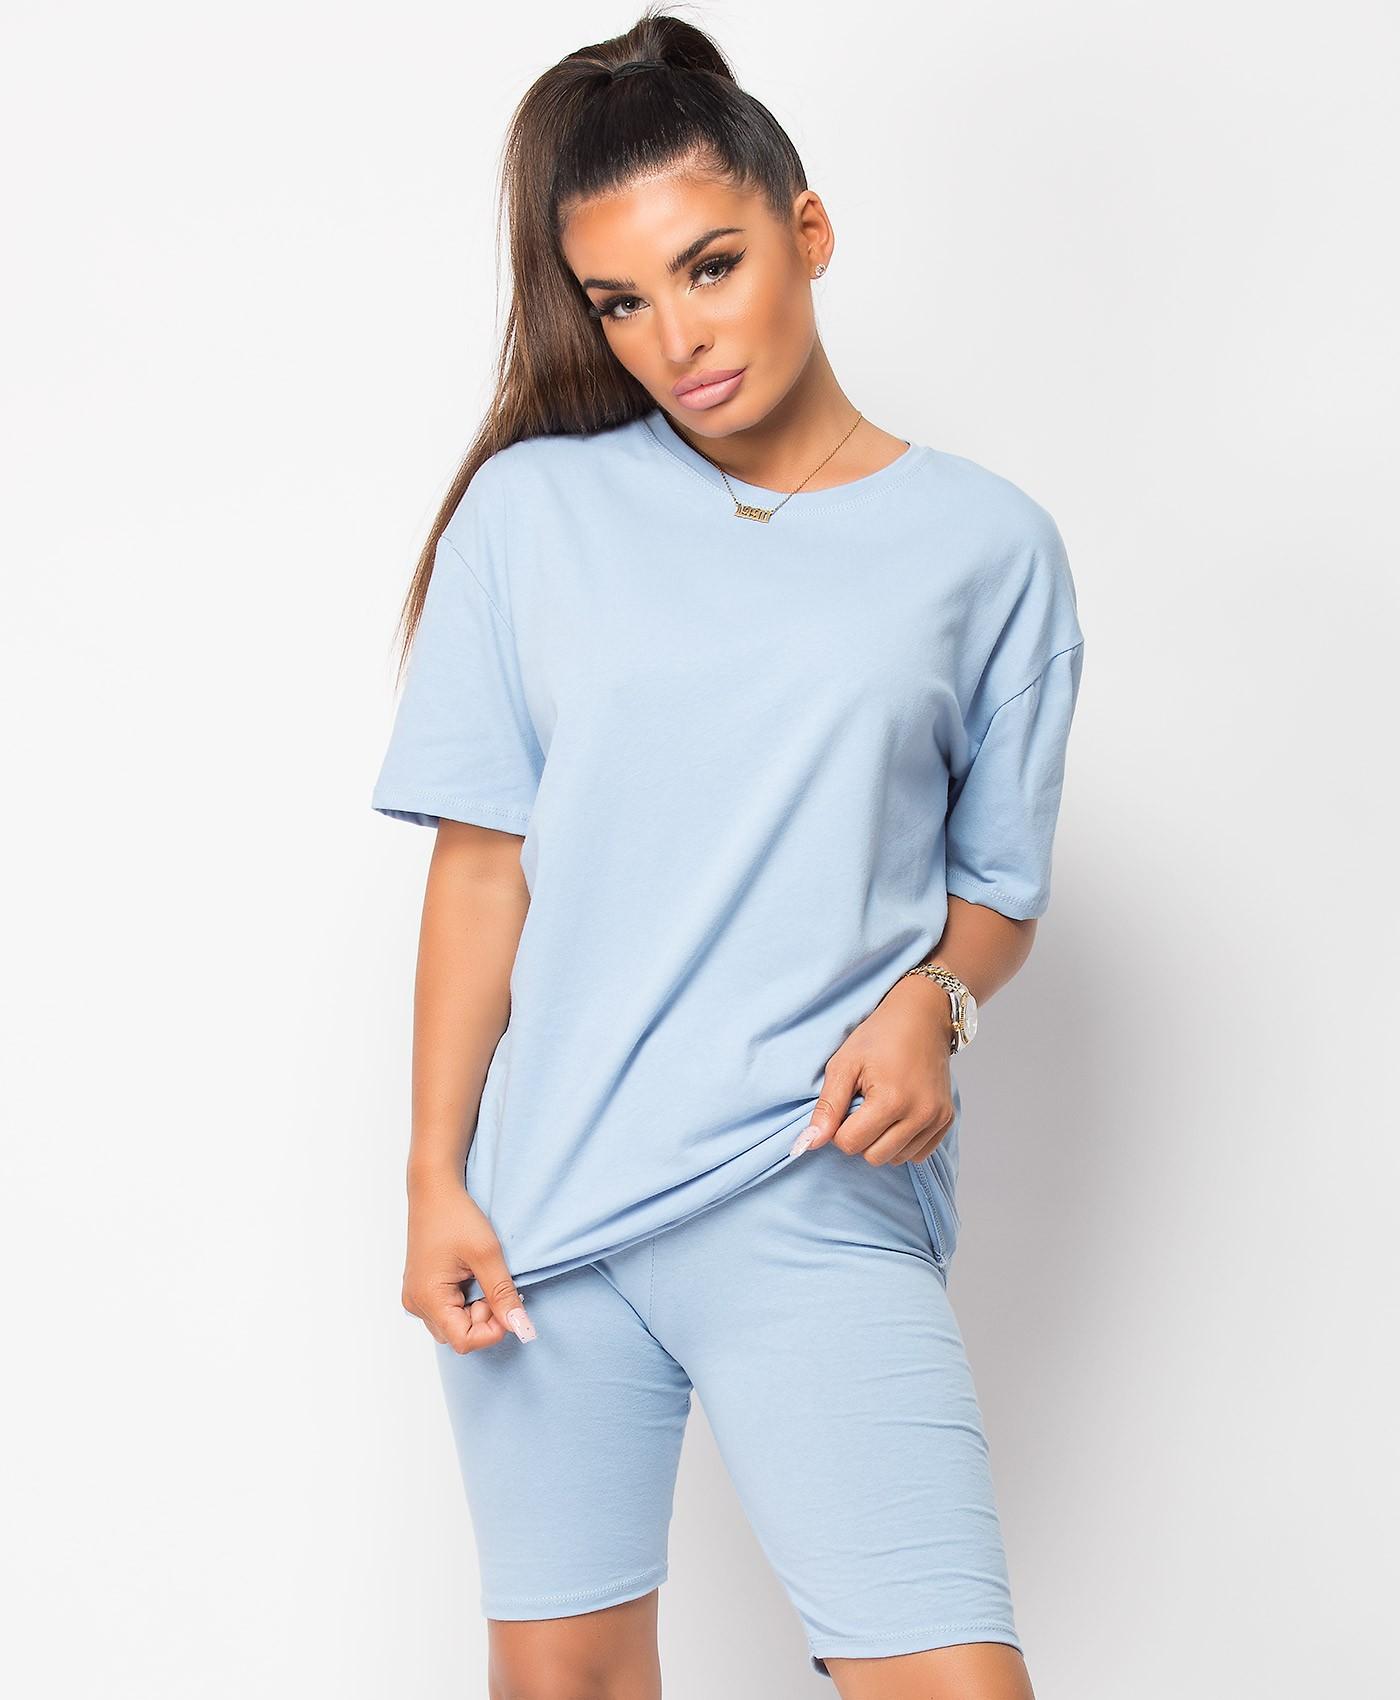 Sky Blue Plain Cycling Short & T-Shirt Co Ord Loungewear Set